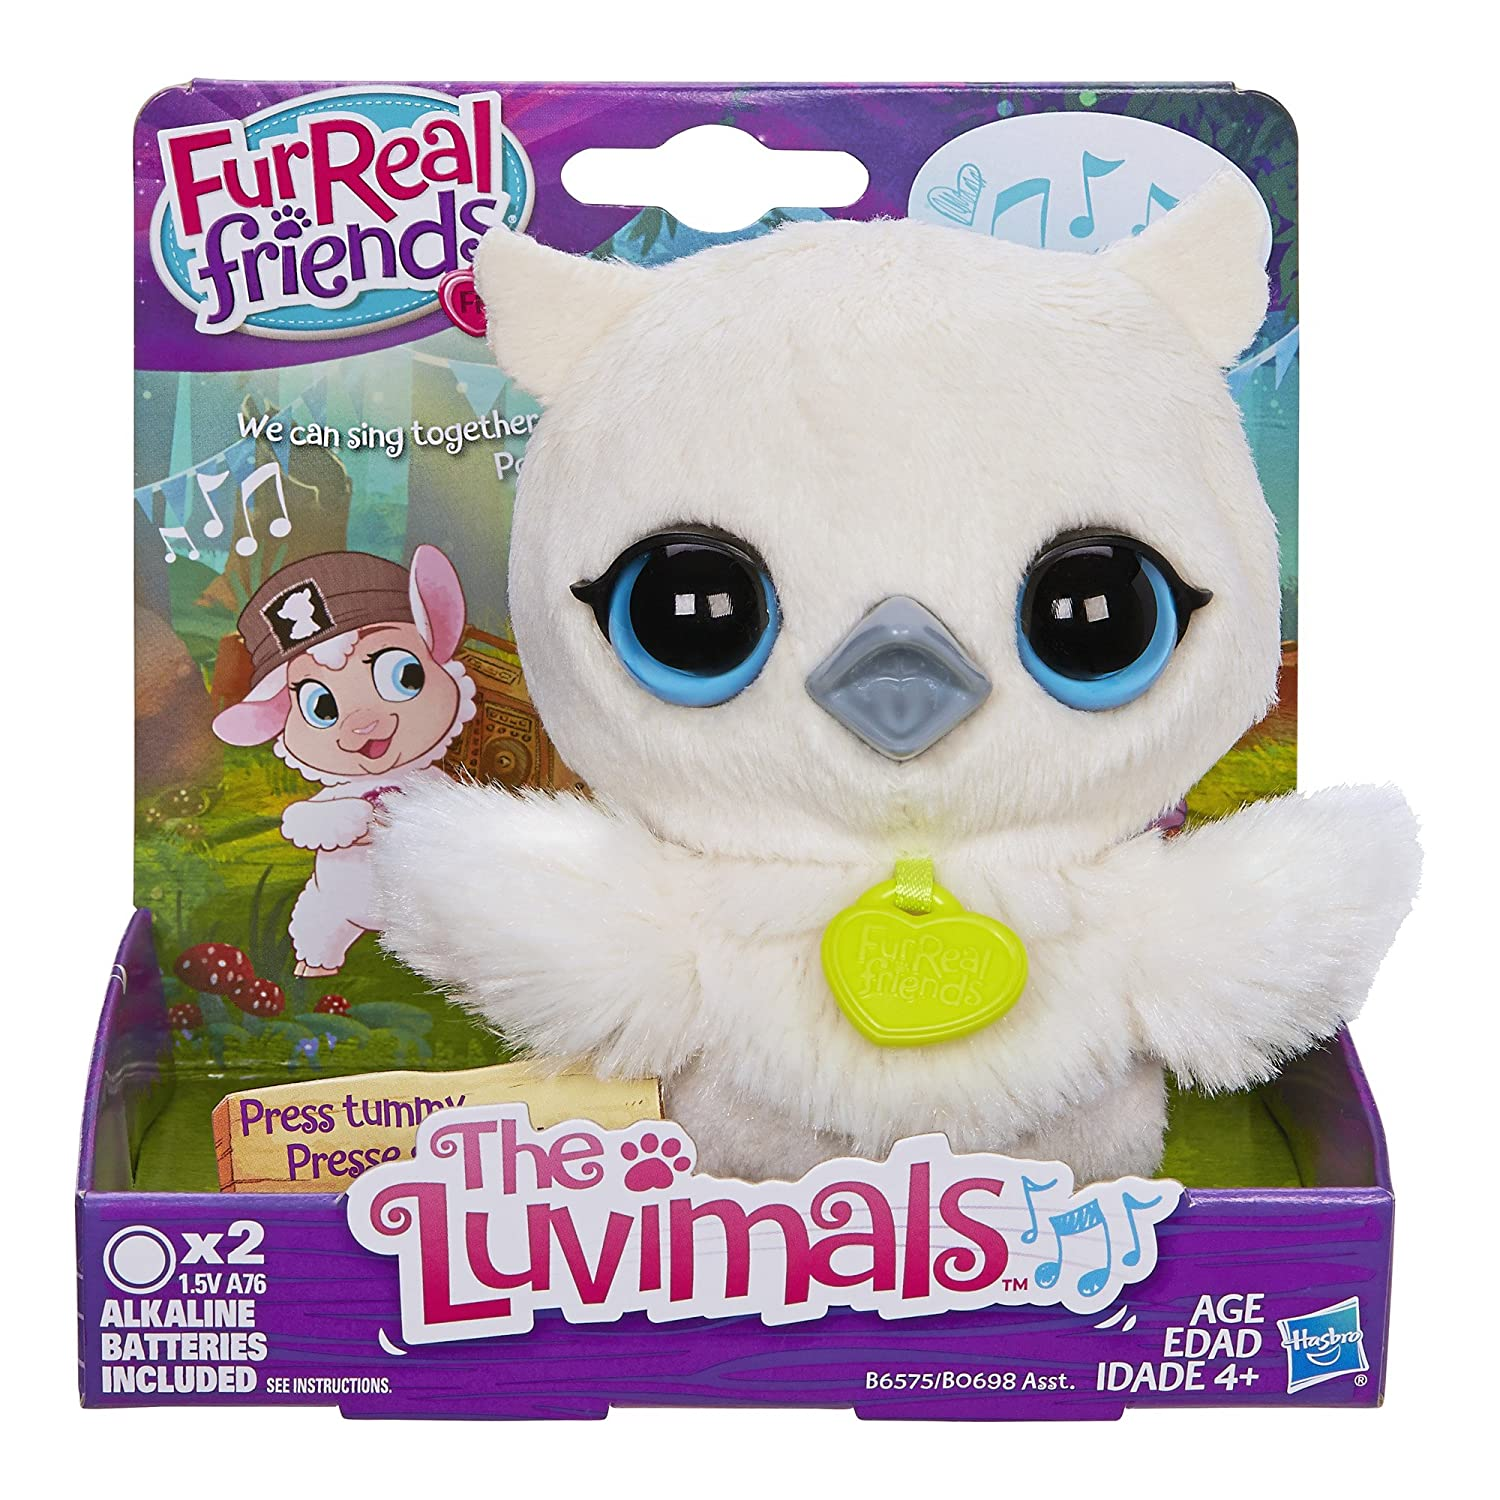 Furreal friends baby snow leopard flurry review robotic dog toys - Amazon Com Furreal Friends Luvimals Sweet Singin Owl Plush Toys Games